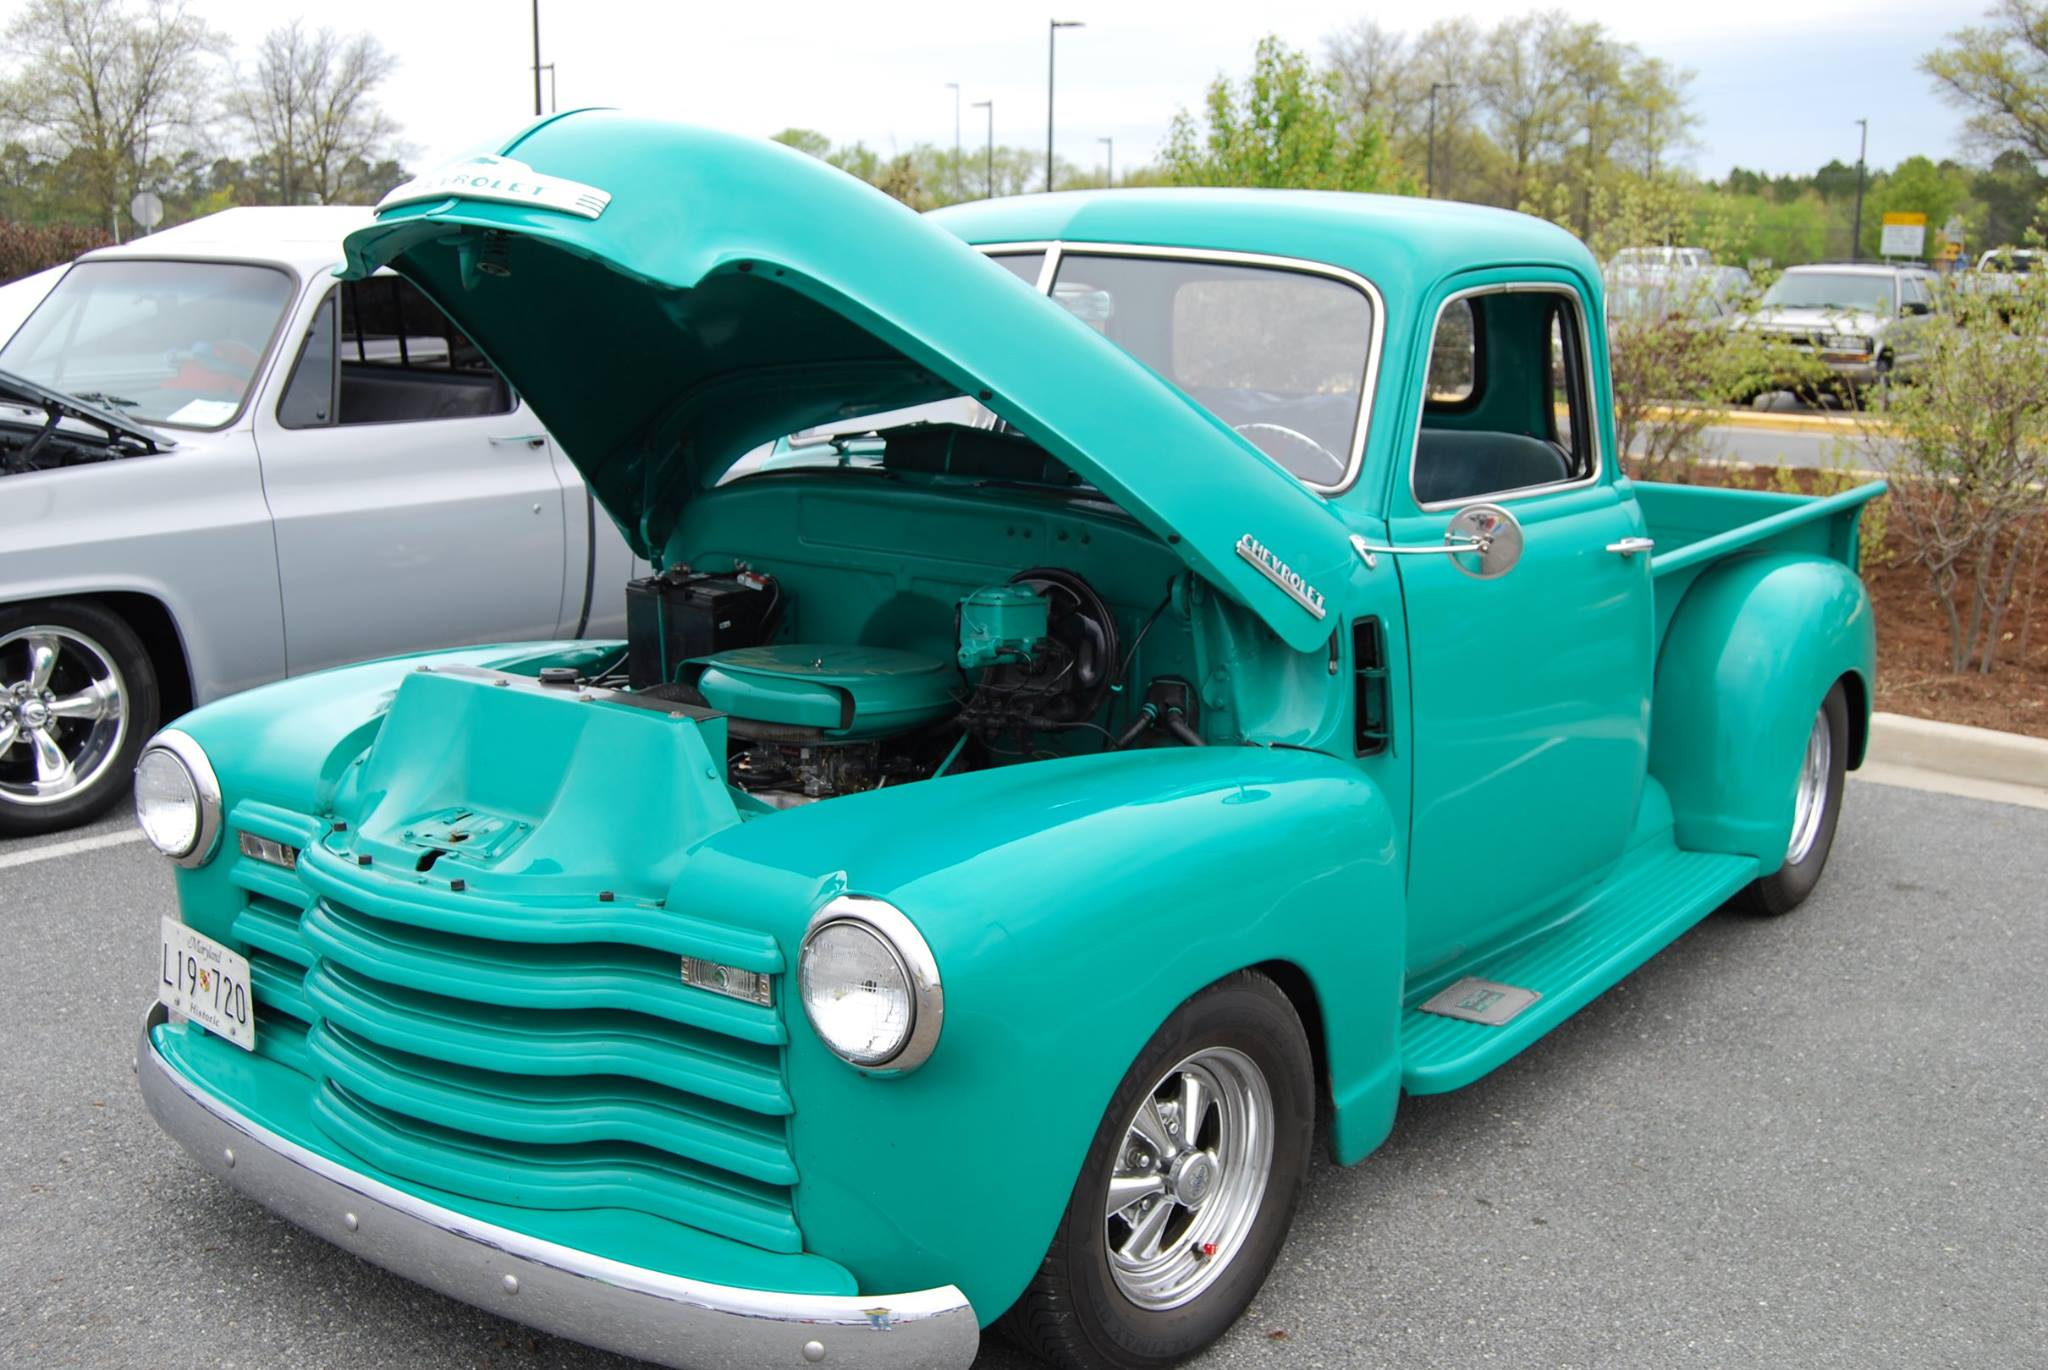 DCTC Car Show and Spring Fest, 2nd Annual.